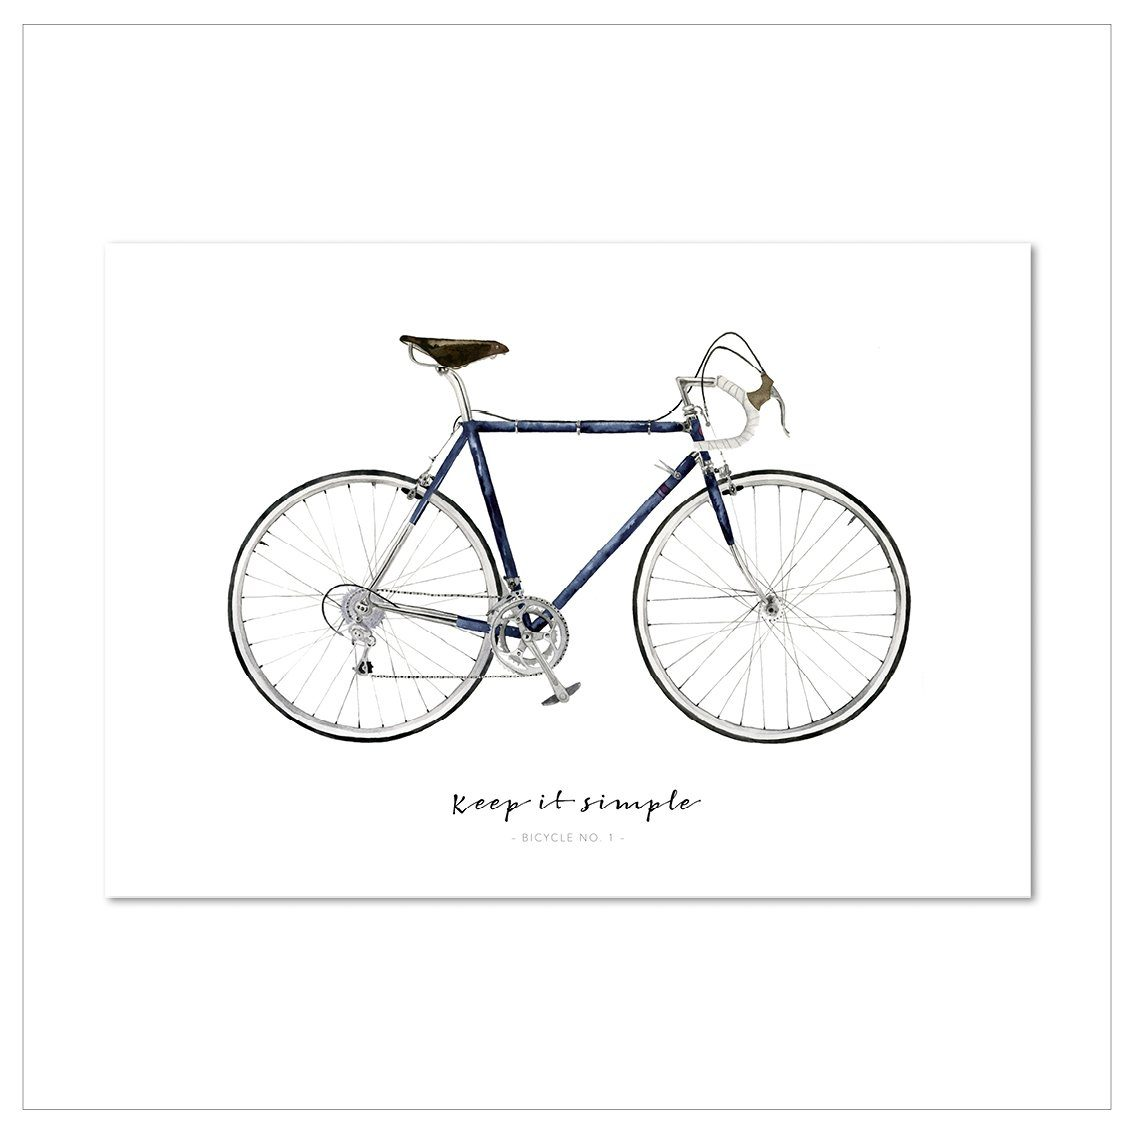 Kunstdruck - KEEP IT SIMPLE | BICYCLE NO.1 Kunstdruck Leo la Douce